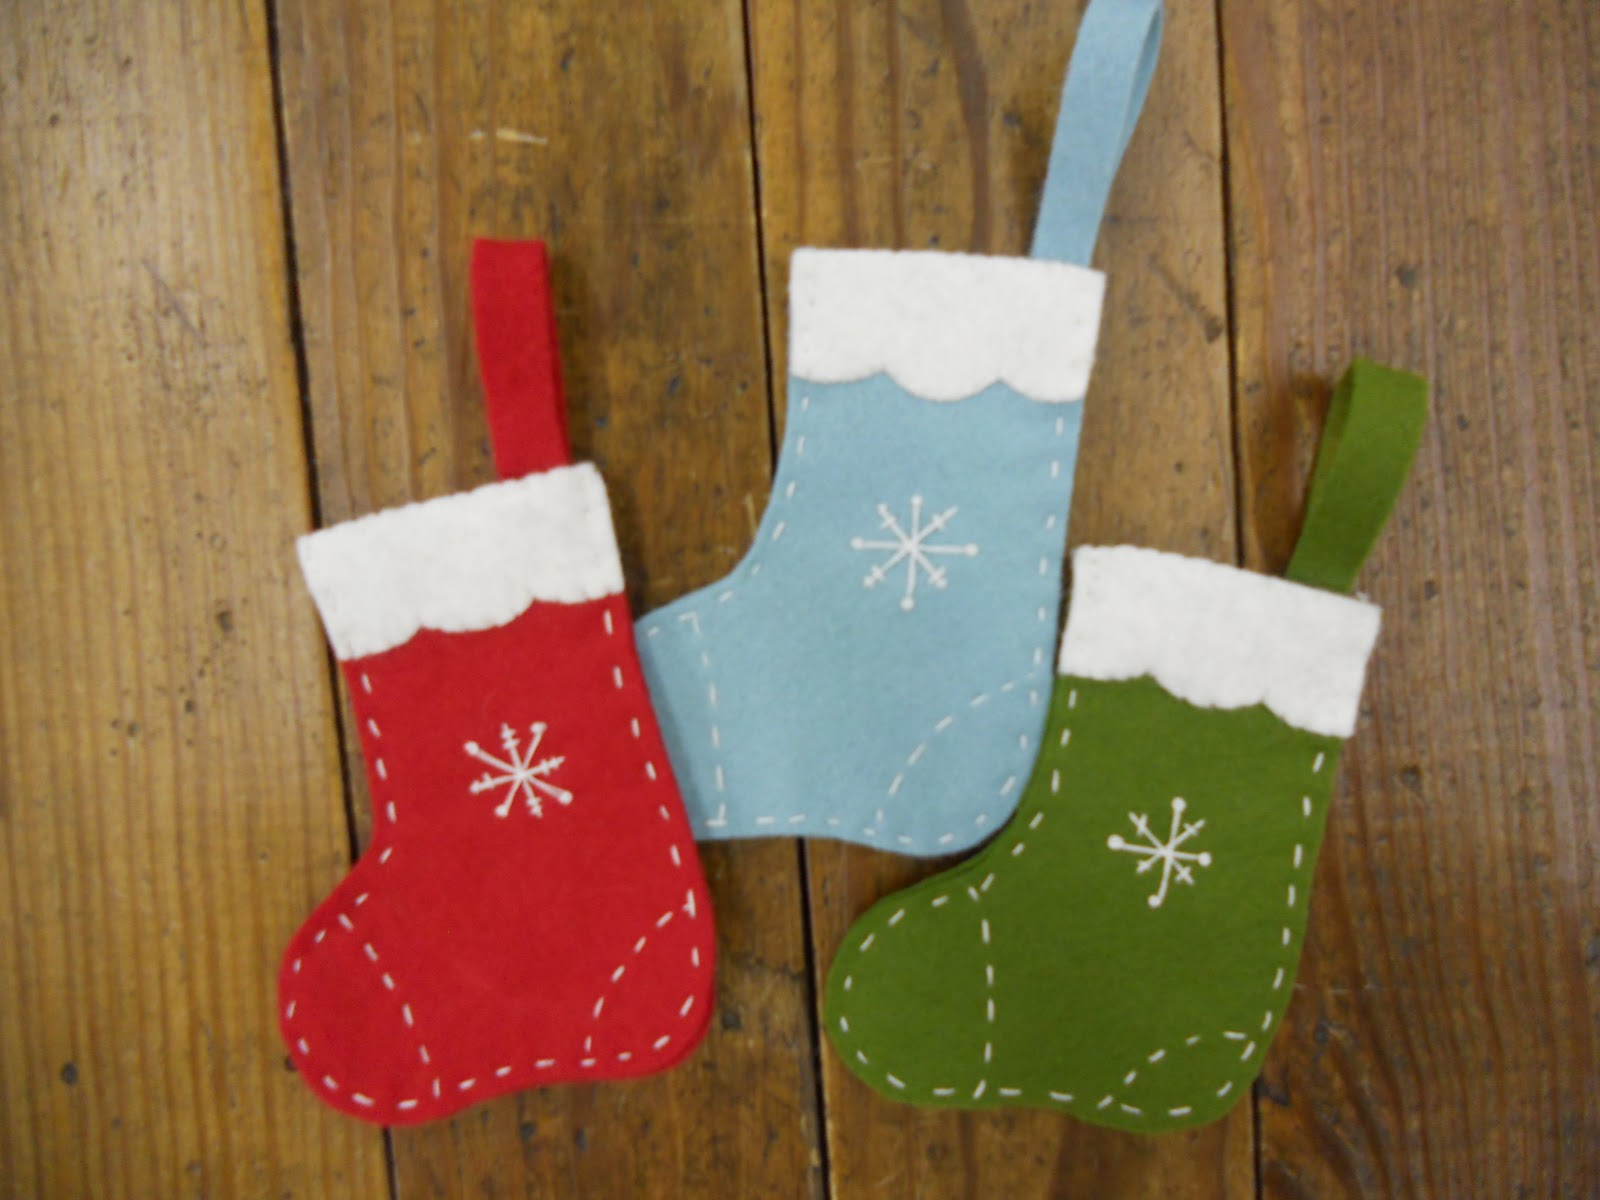 wool felt central snowflake stocking ornament tutorial